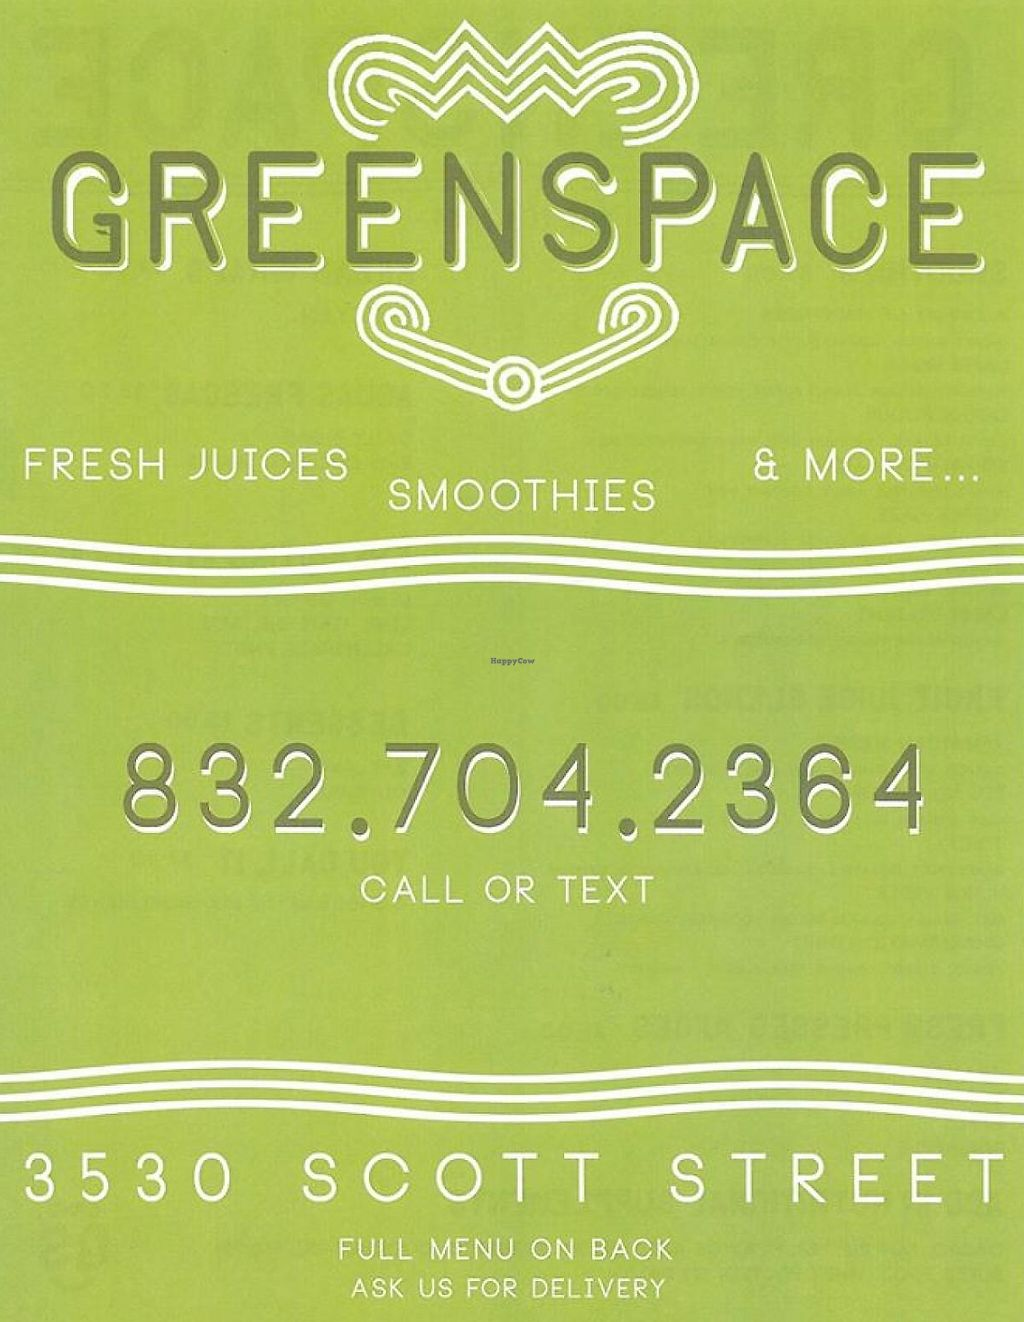 "Photo of GreenSpace Juice Bar  by <a href=""/members/profile/community"">community</a> <br/>GreenSpace Juice Bar <br/> September 28, 2014  - <a href='/contact/abuse/image/51802/228361'>Report</a>"